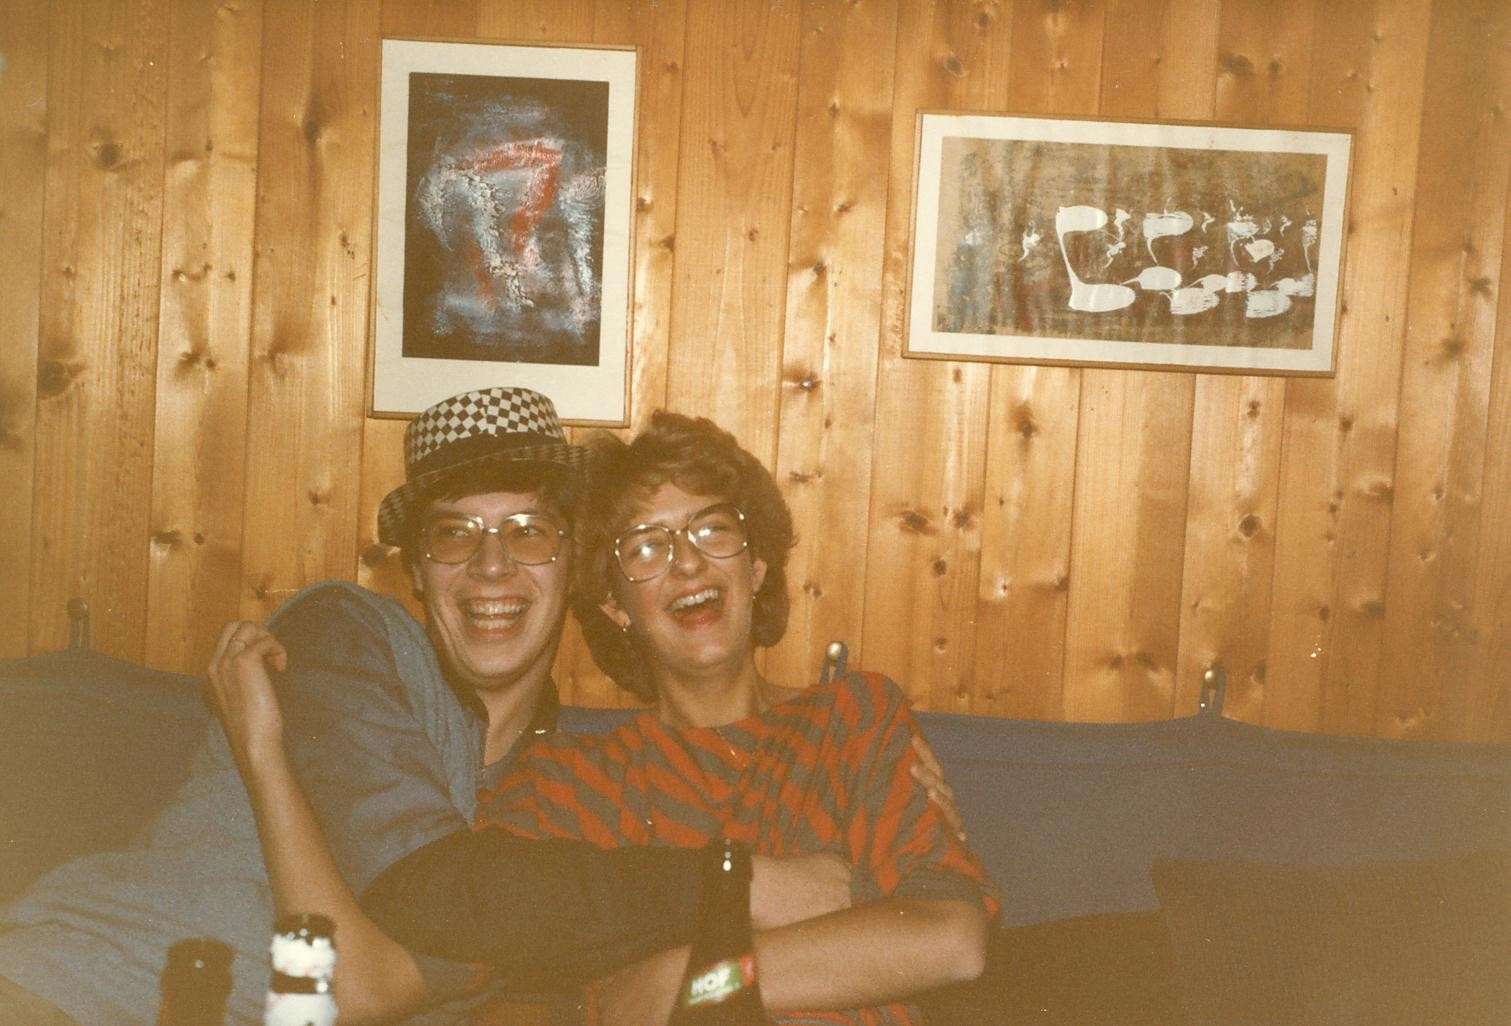 Scan11367 31-12-1983